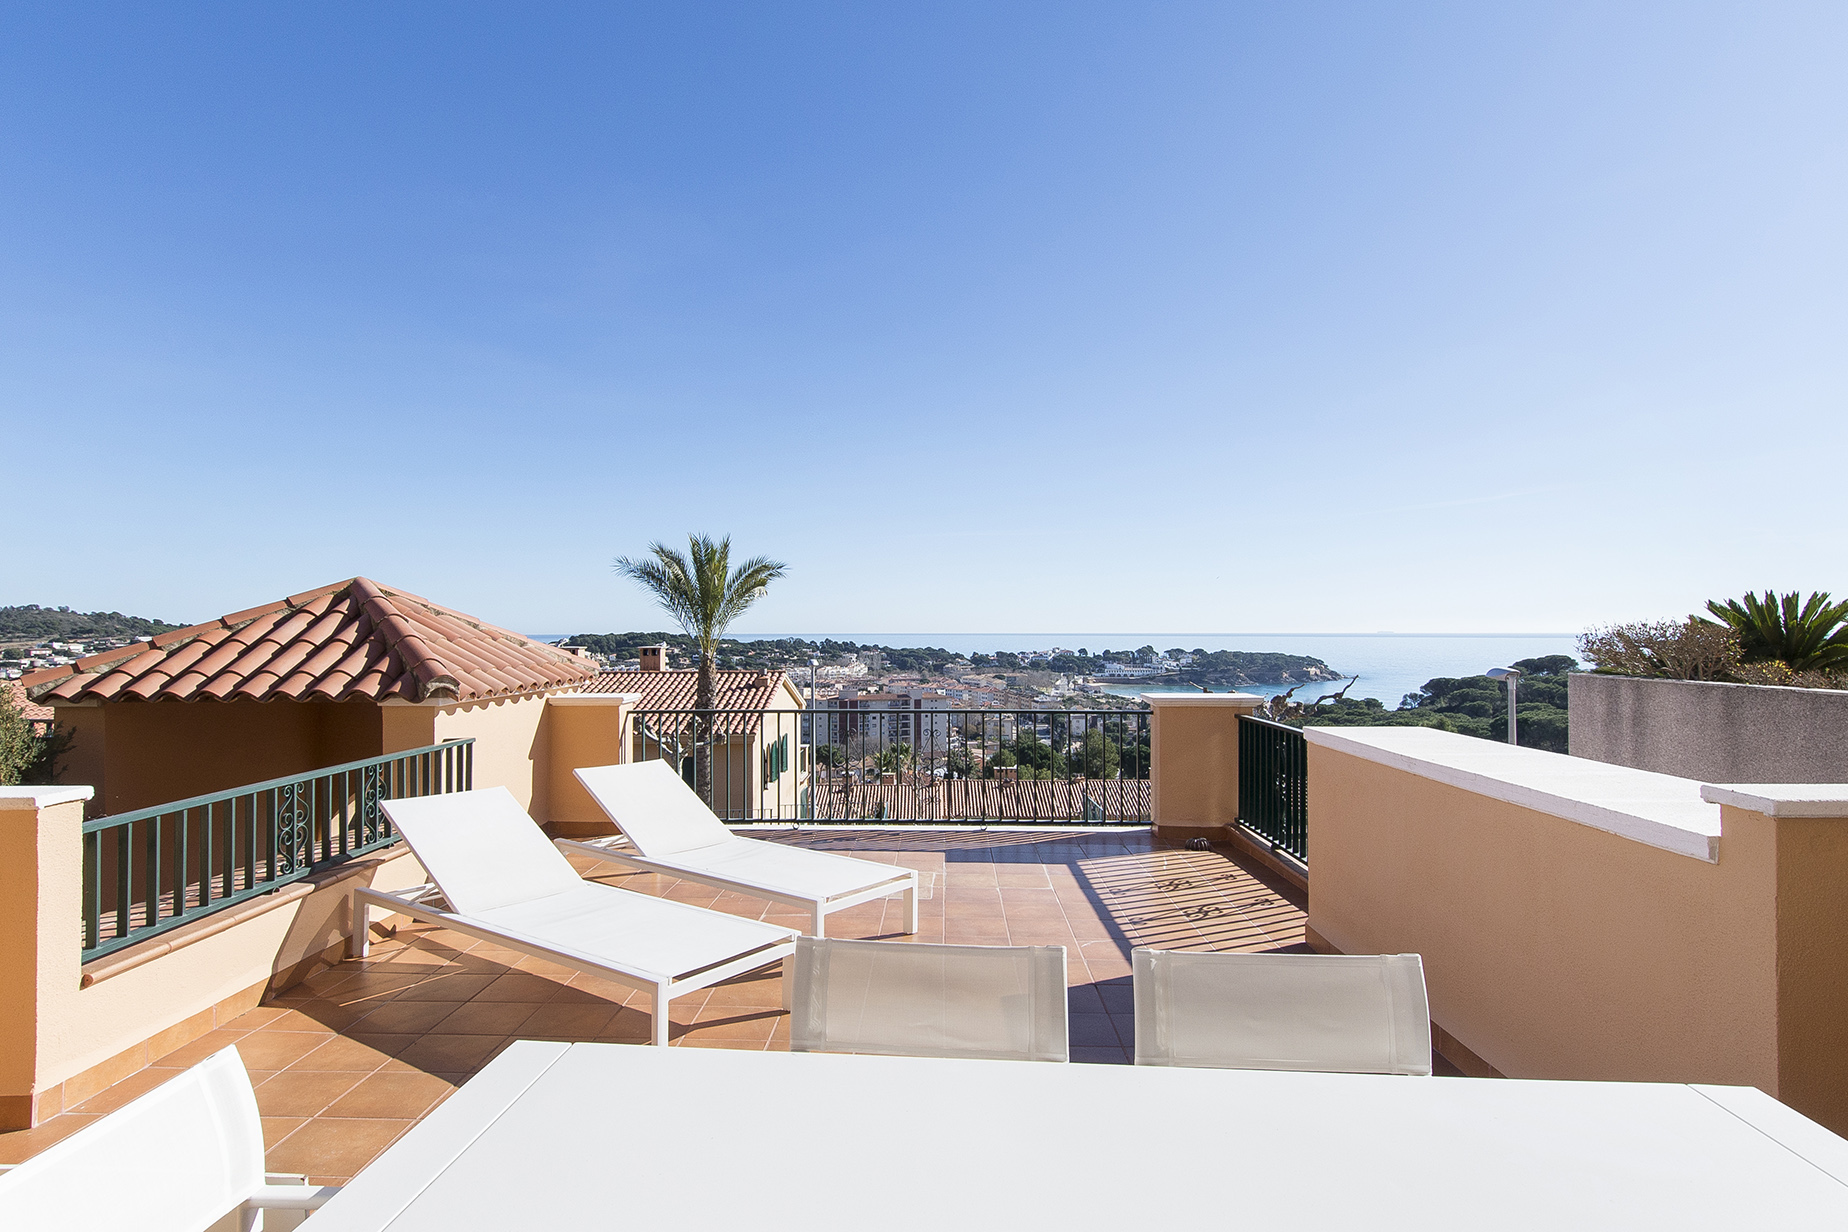 Single Family Home for Sale at Renovated terraced house with sea views in S'Agaro S'Agaro, Costa Brava, 17248 Spain